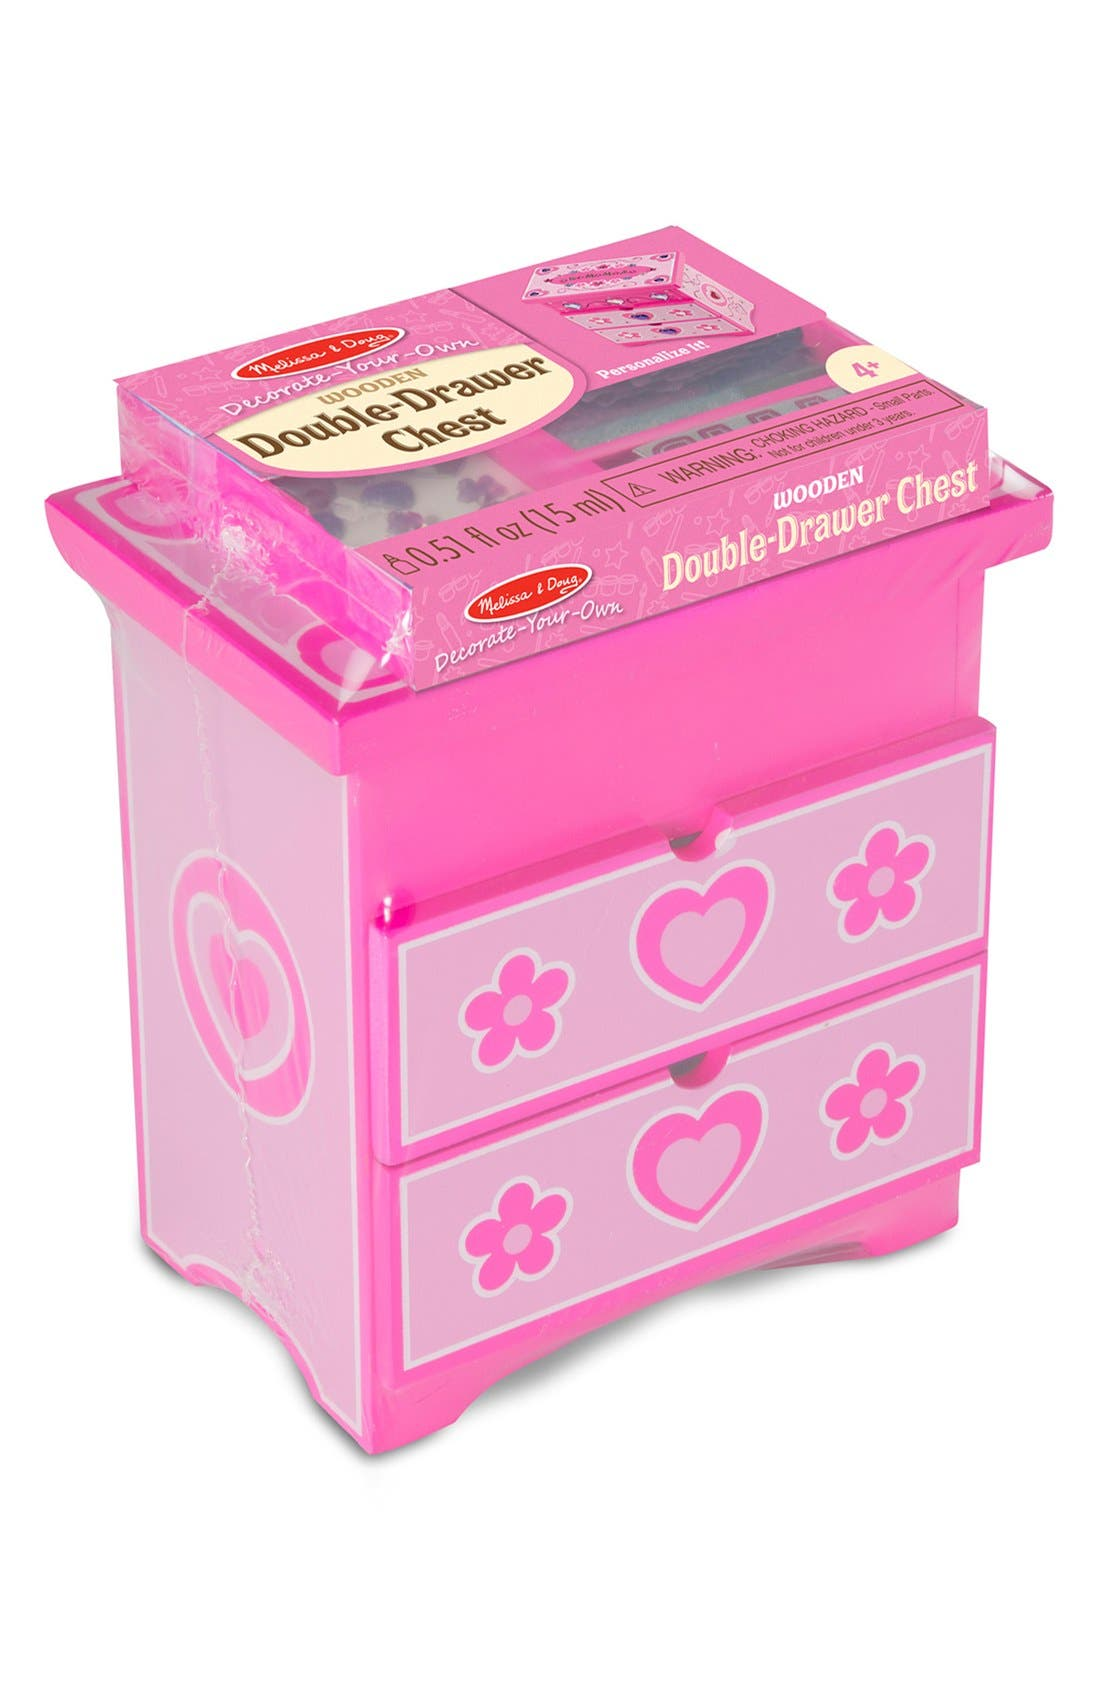 Main Image - Melissa & Doug 'Decorate Your Own' Double Drawer Chest